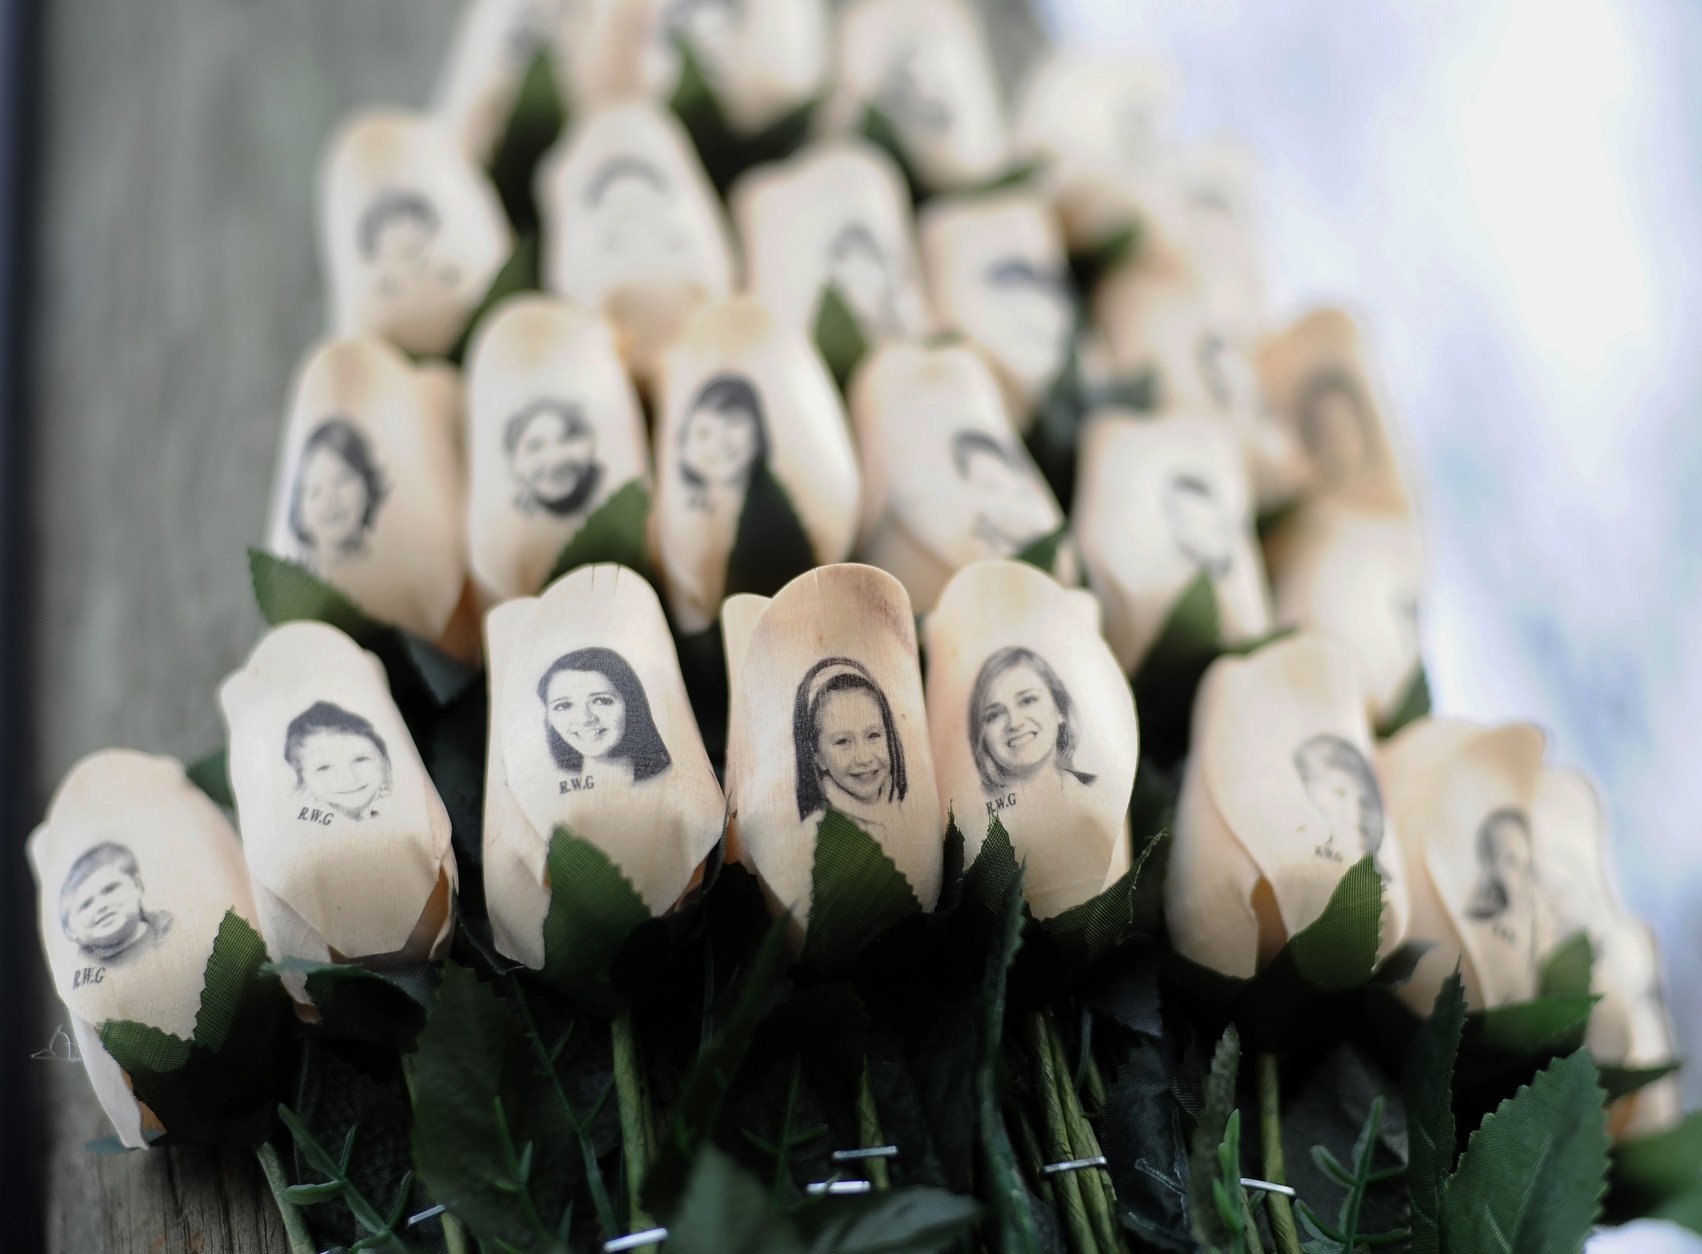 FILE - In this Jan. 14, 2013 file photo, white roses with the faces of victims of the Sandy Hook Elementary School shooting are attached to a telephone pole near the school on the one-month anniversary of the shooting that left 26 dead in Newtown, Conn. The second anniversary of the shooting is Sunday, Dec. 14, 2014 and the town is not holding any public commemoration ceremonies. First Selectman Pat Llodra and school Superintendent Joseph Erardi said the day will be marked through personal reflection and remembrance. (AP Photo/Jessica Hill, File)